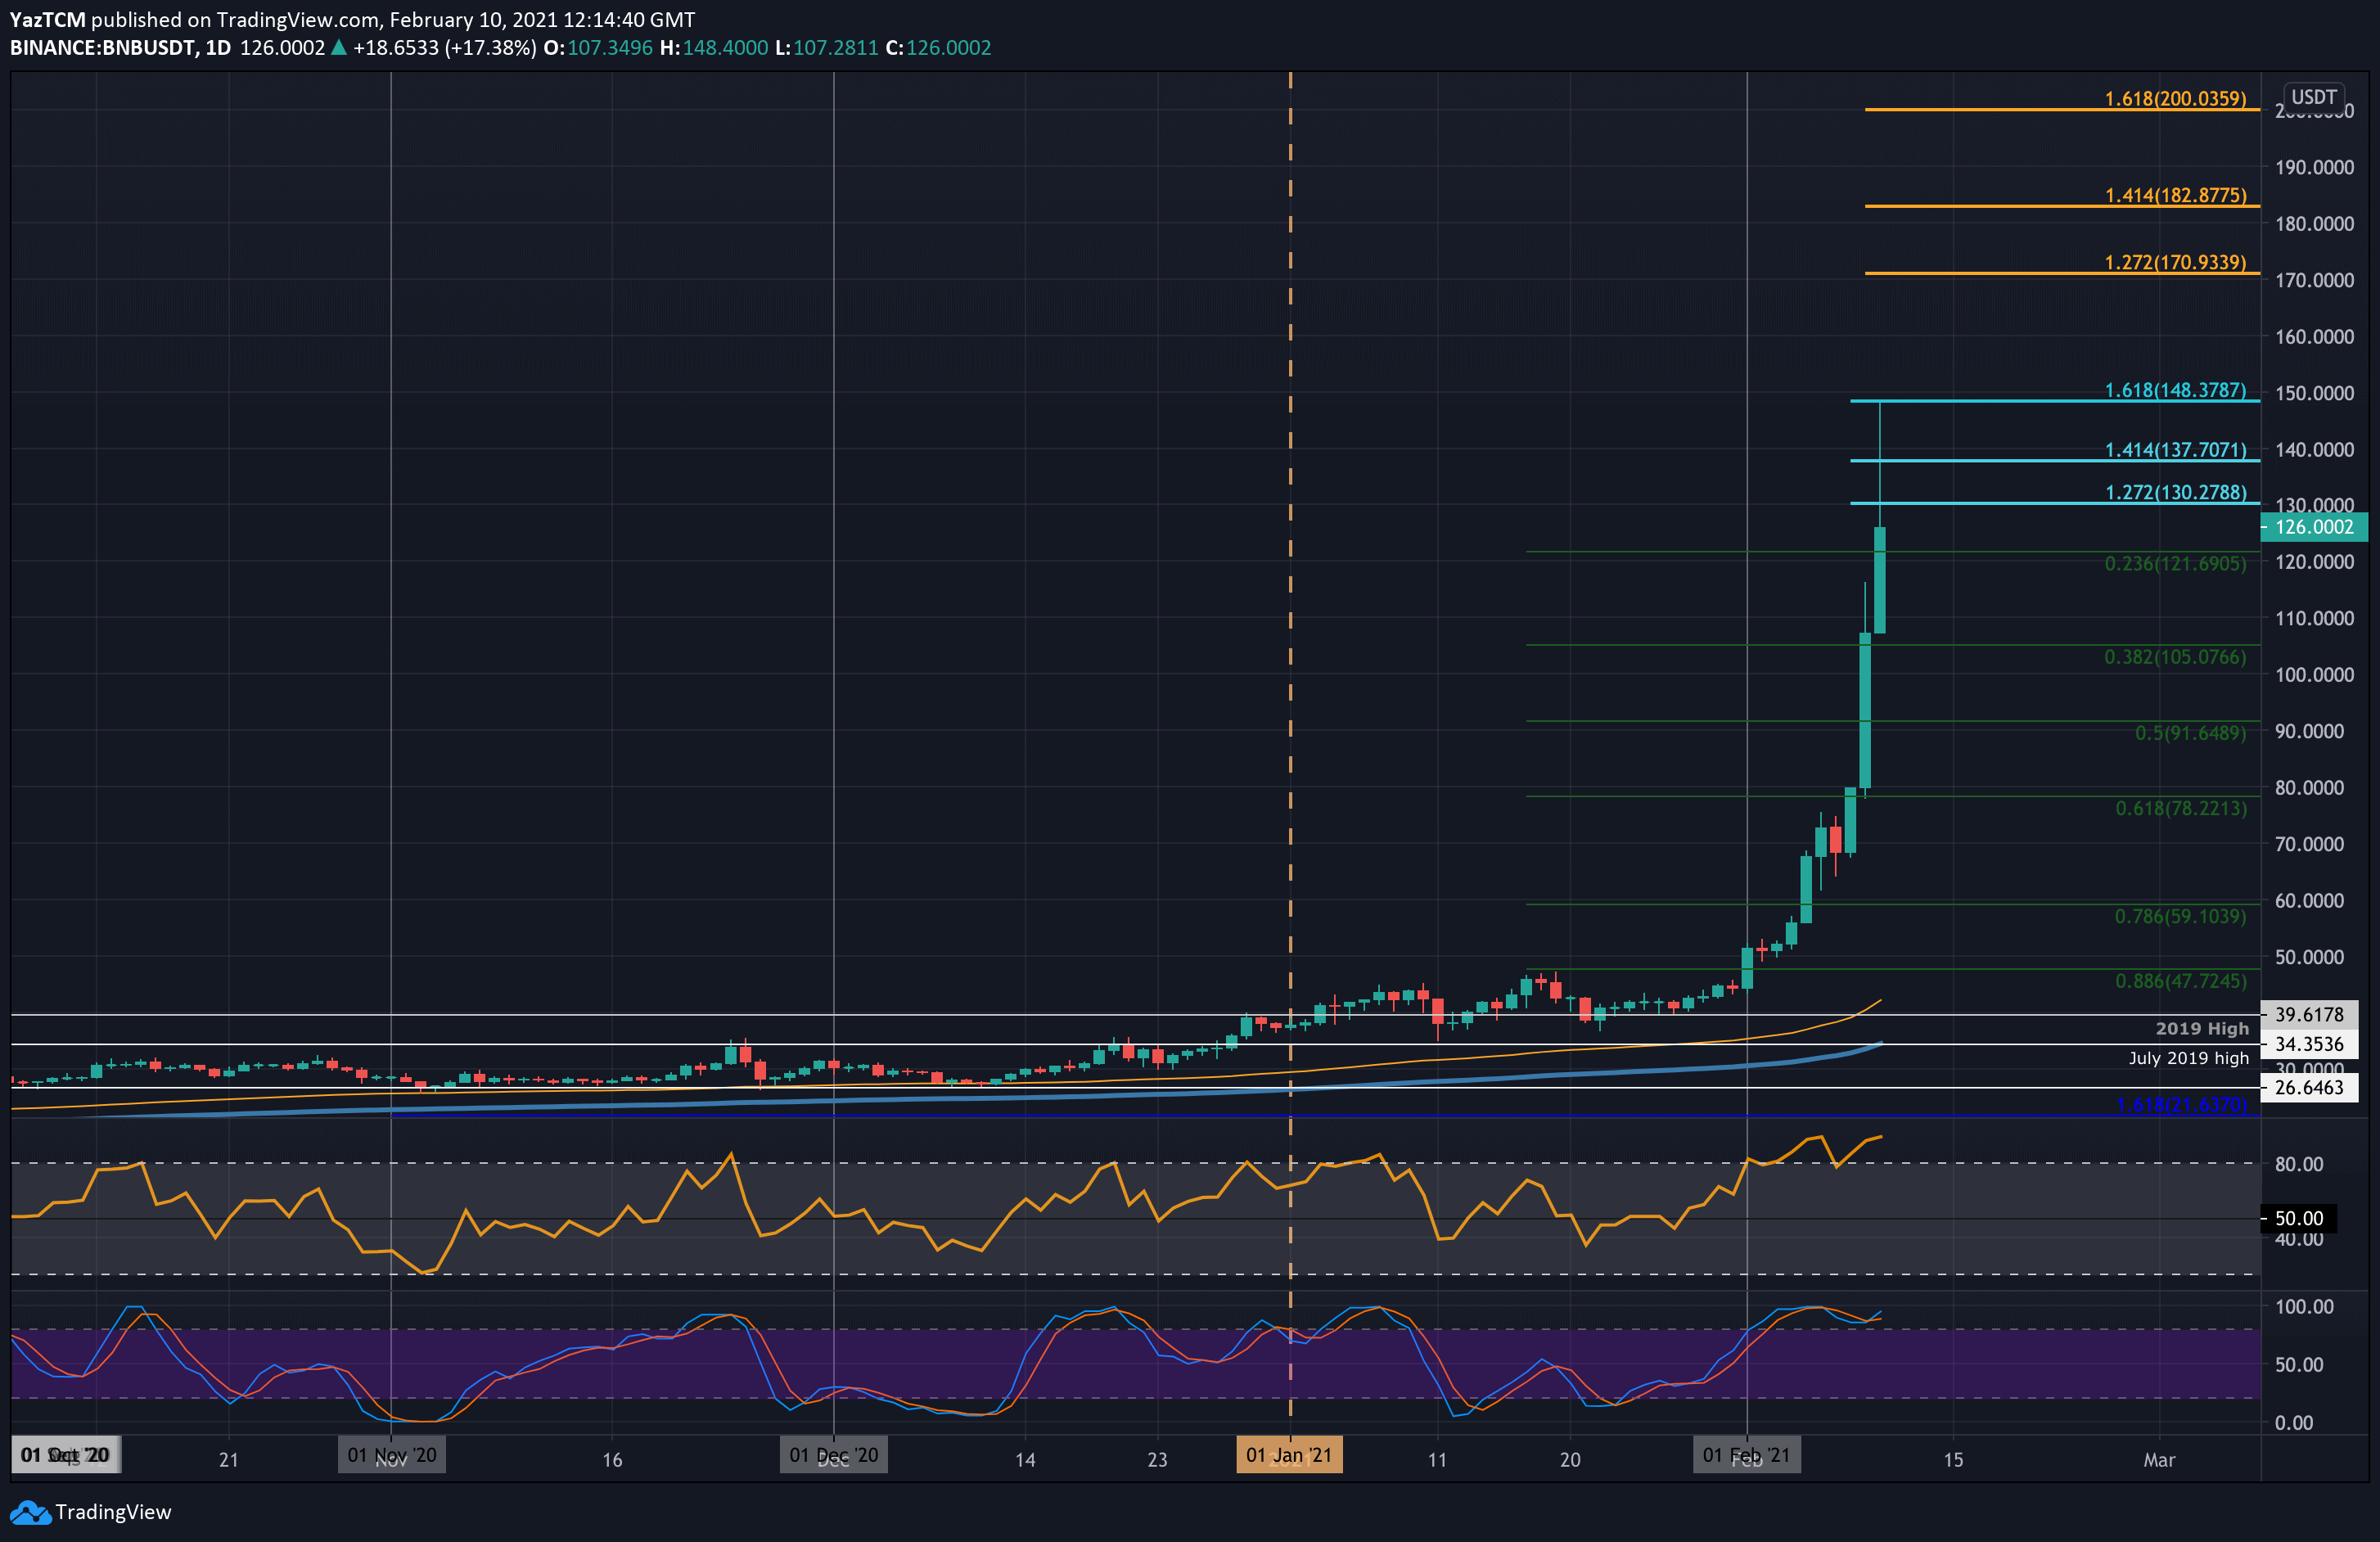 Binance Coin Price Analysis: BNB Goes Parabolic With 150% Weekly Gains, What's Next?